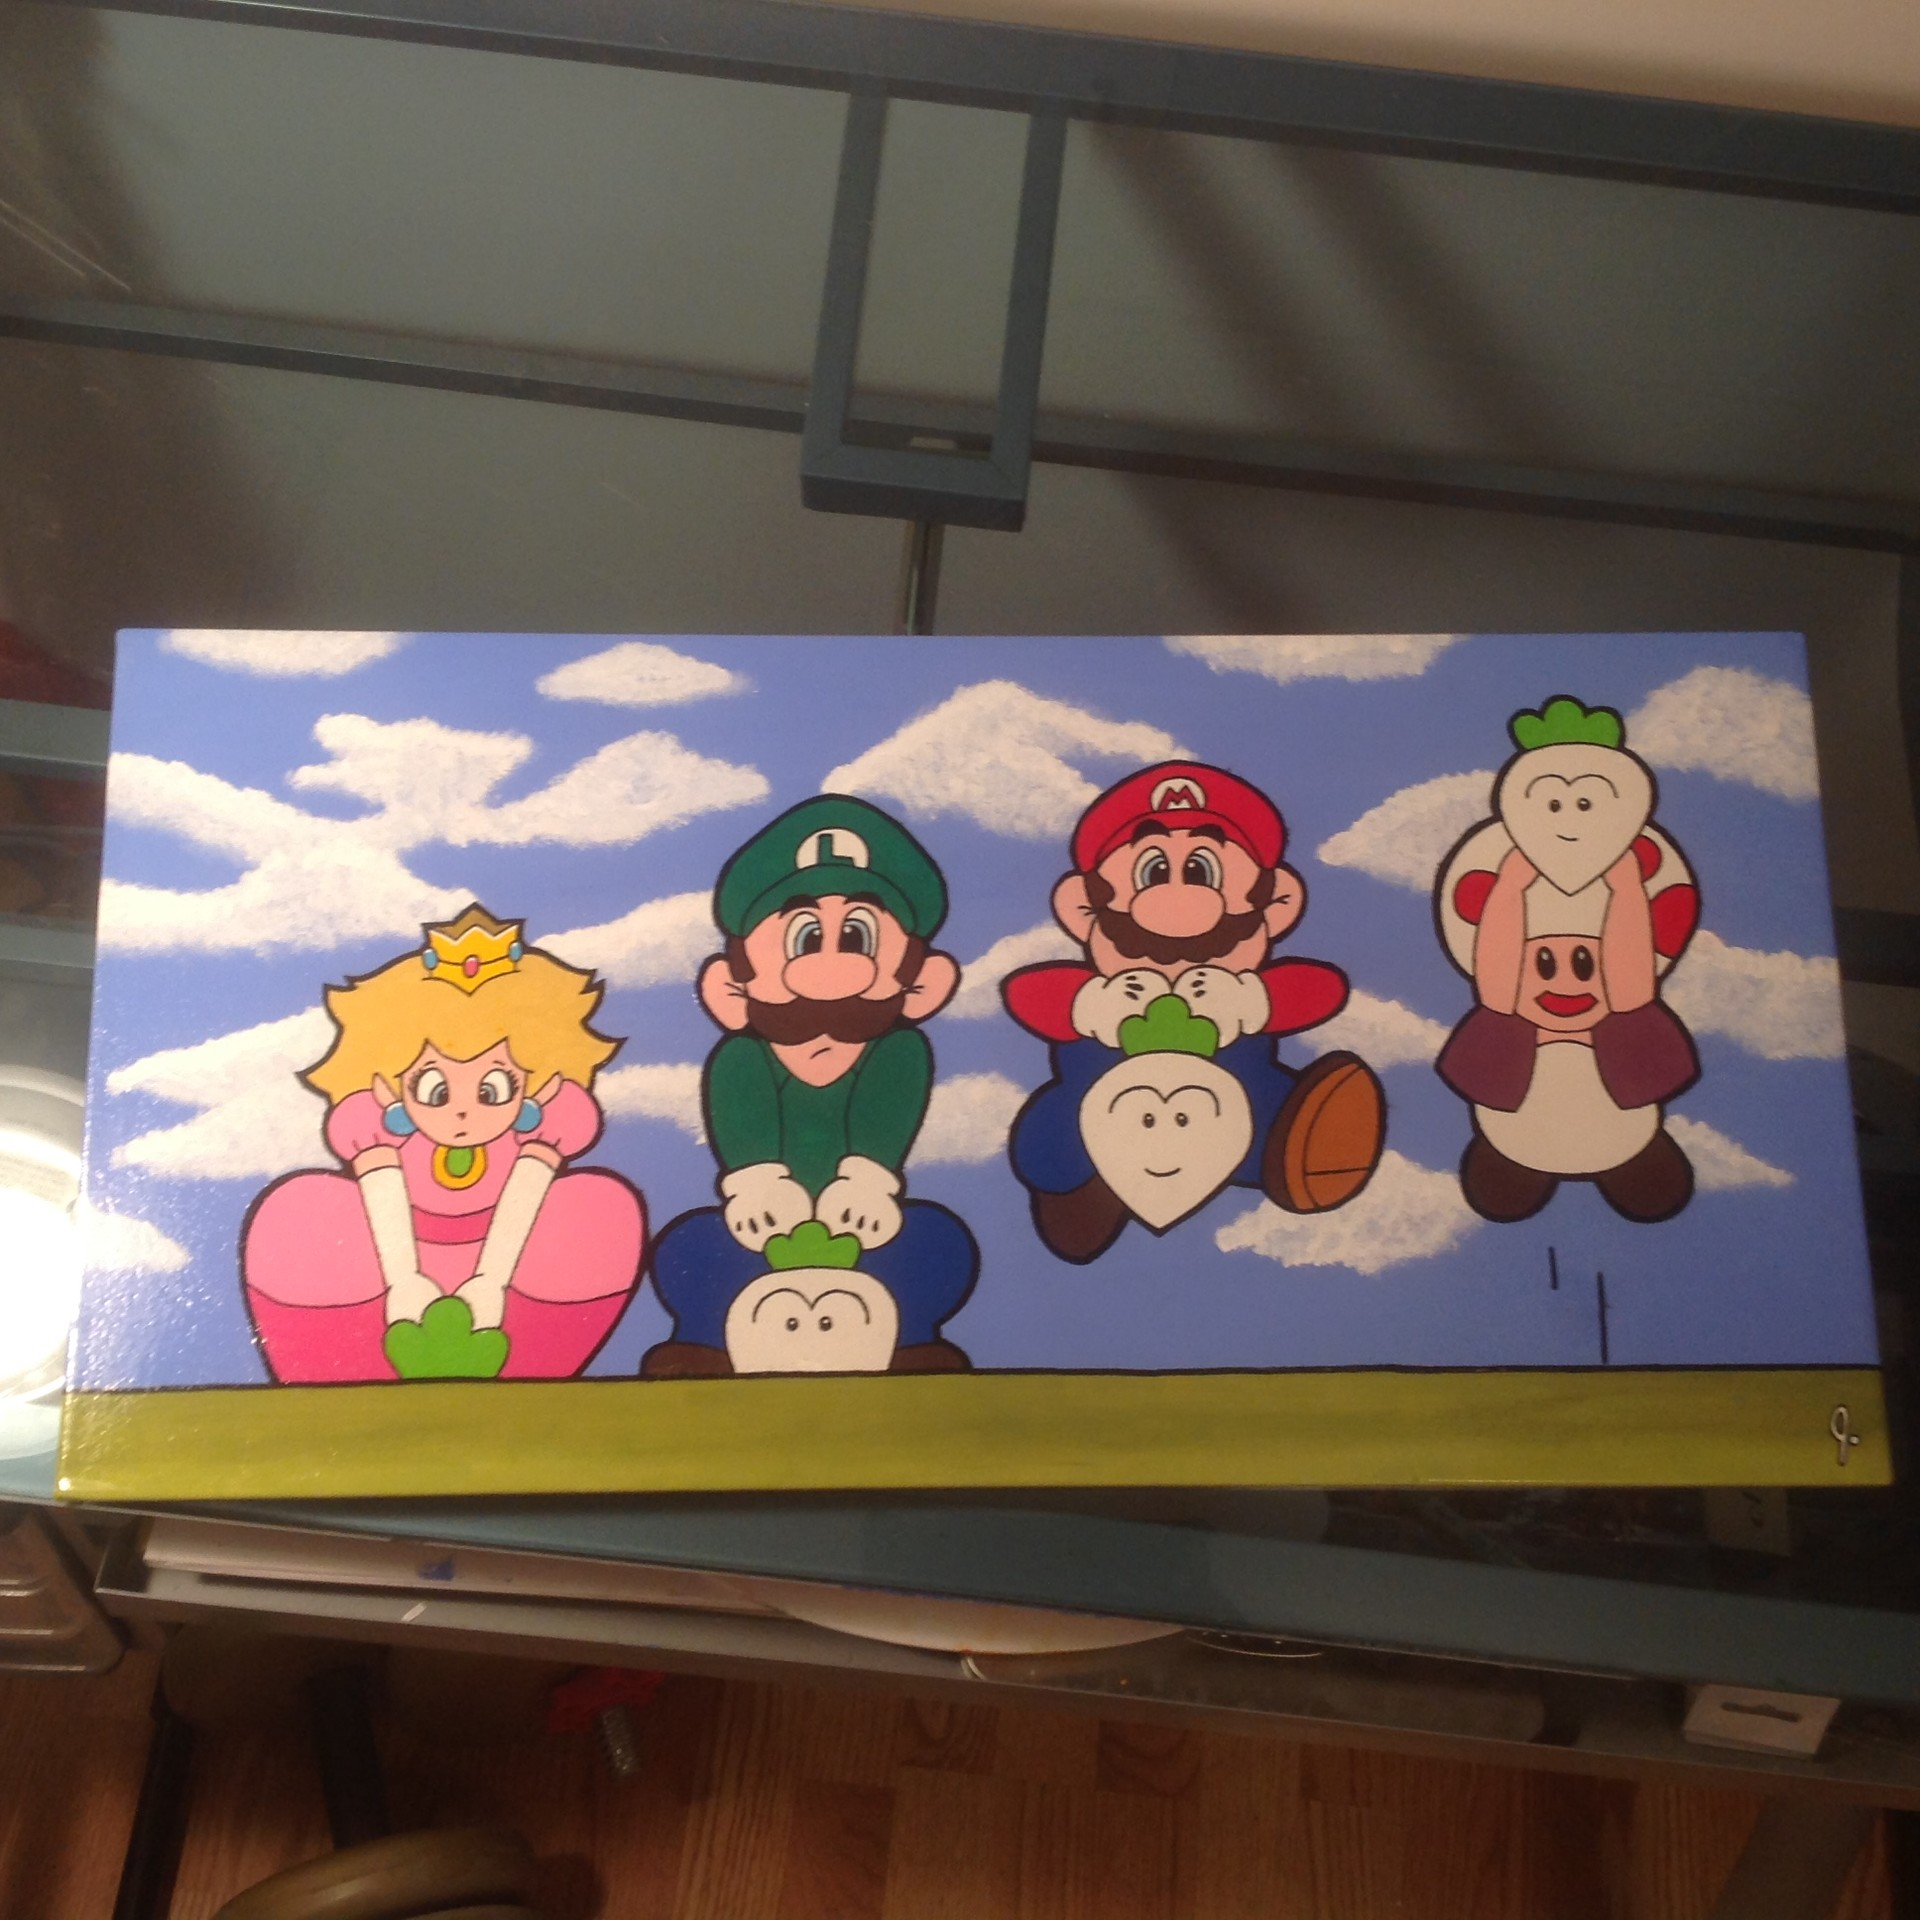 Pluckin' Turnips (Super Mario Bros. 2)